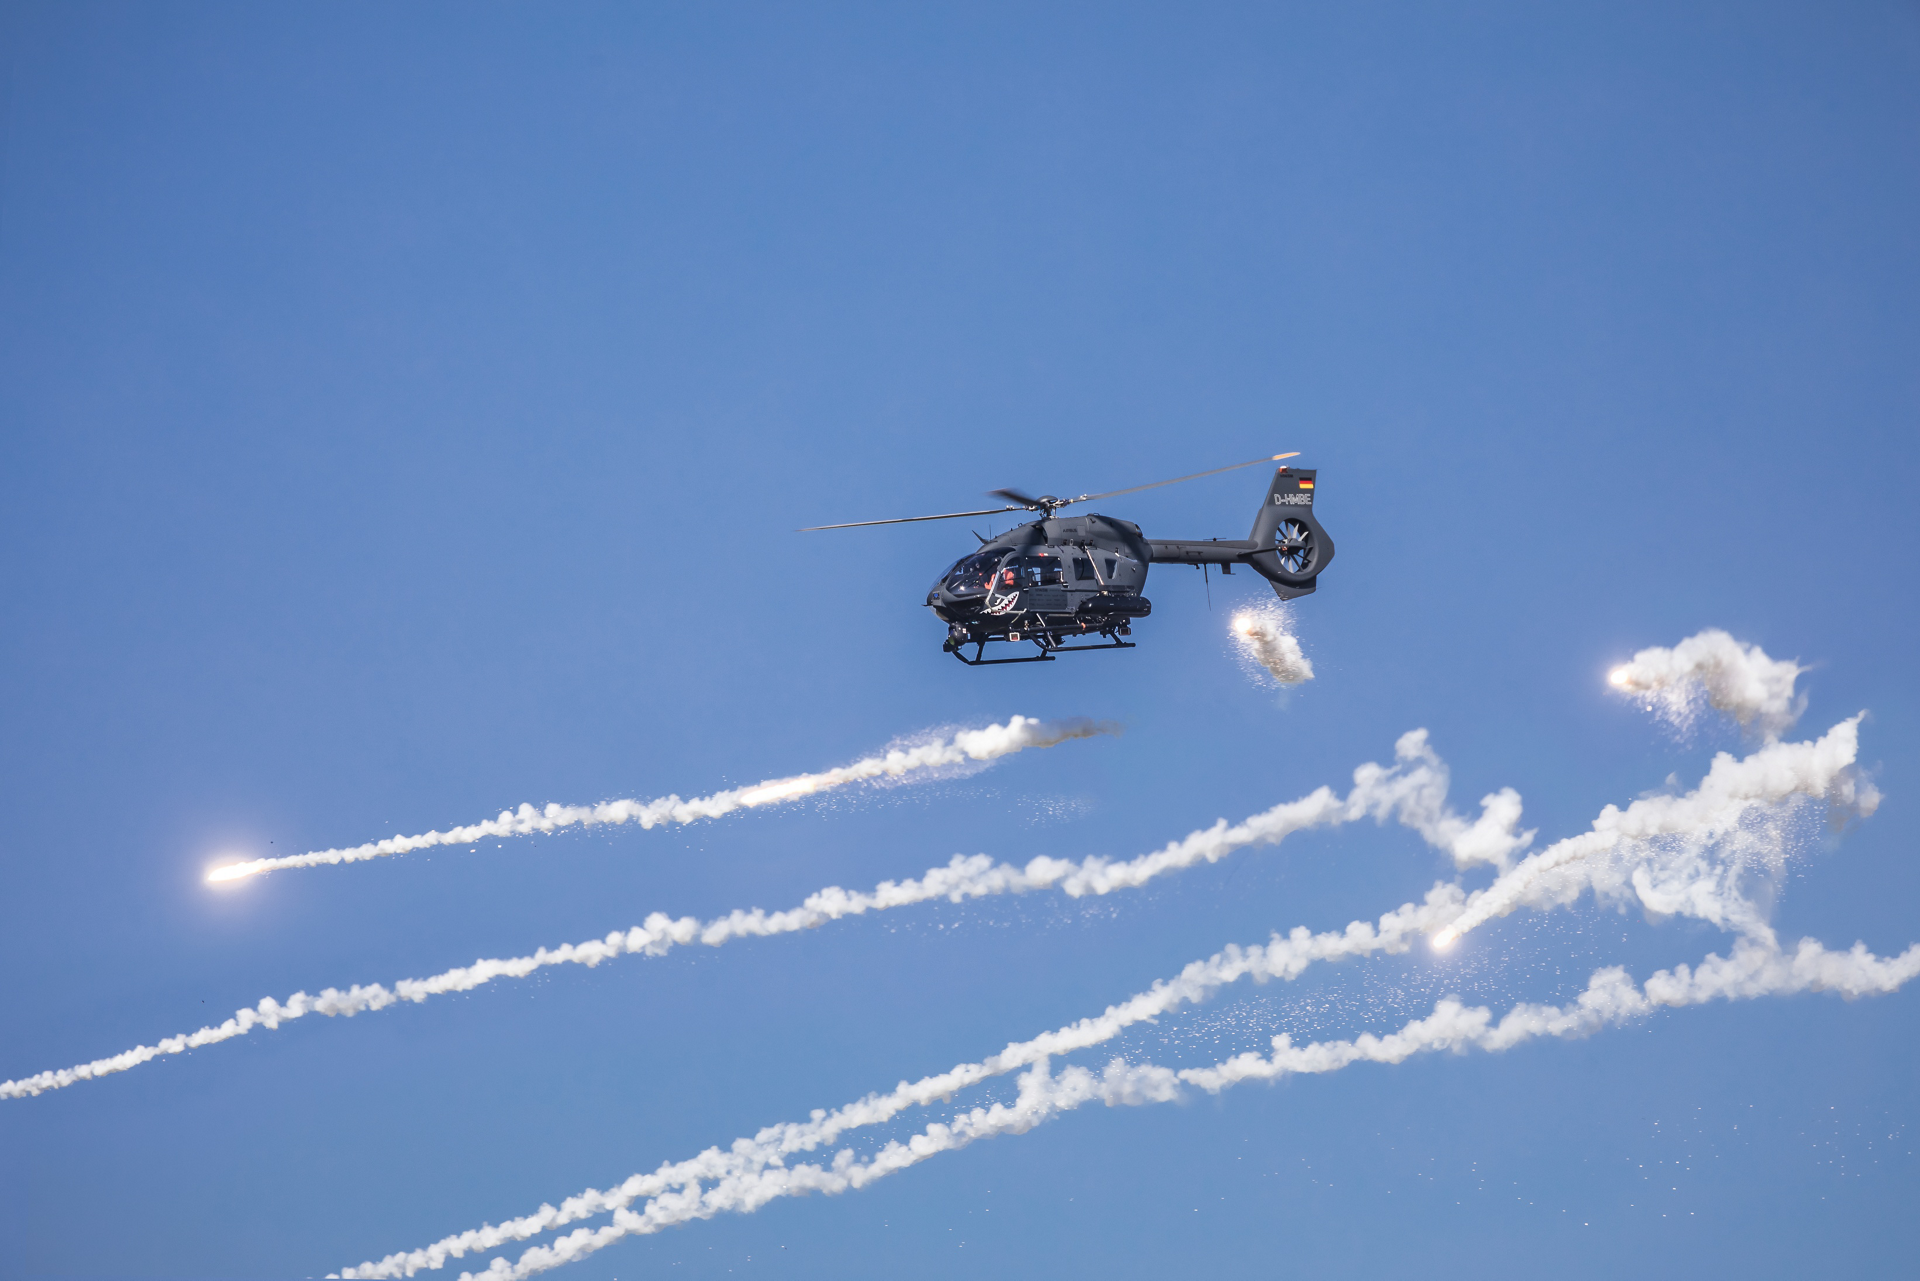 Customer delegations from around the globe converged at Hungary's Bakony Combat Training Center recently for a successful multi-day demonstration of the H145M which was outfitted with the company's new HForce weapons system.